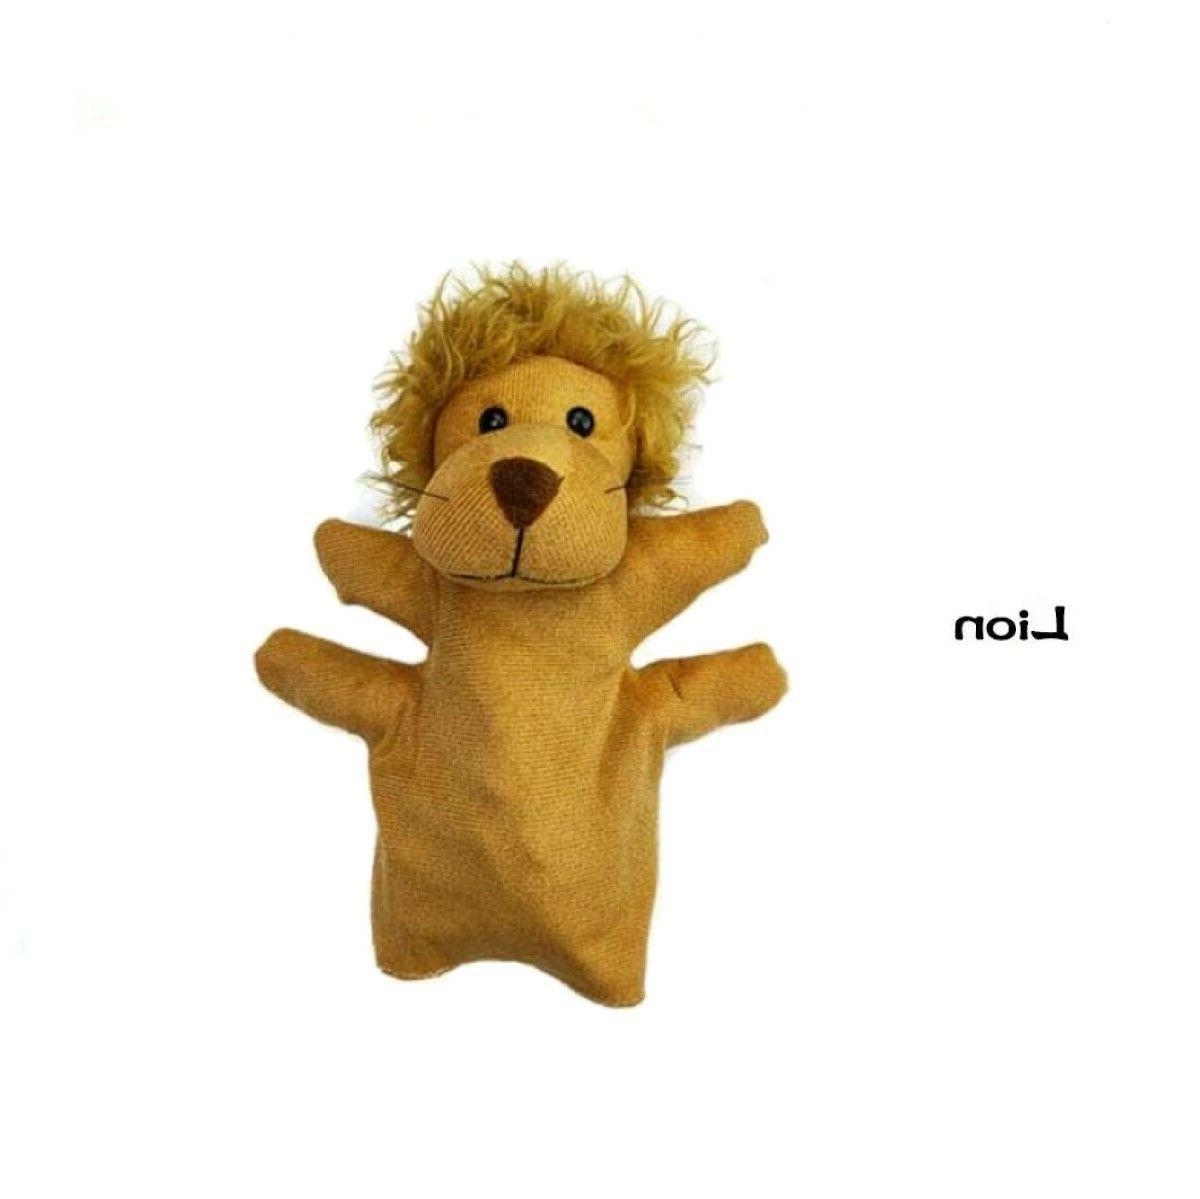 "Animal Soft Plush Premium Interaction 9.2"" of 6"